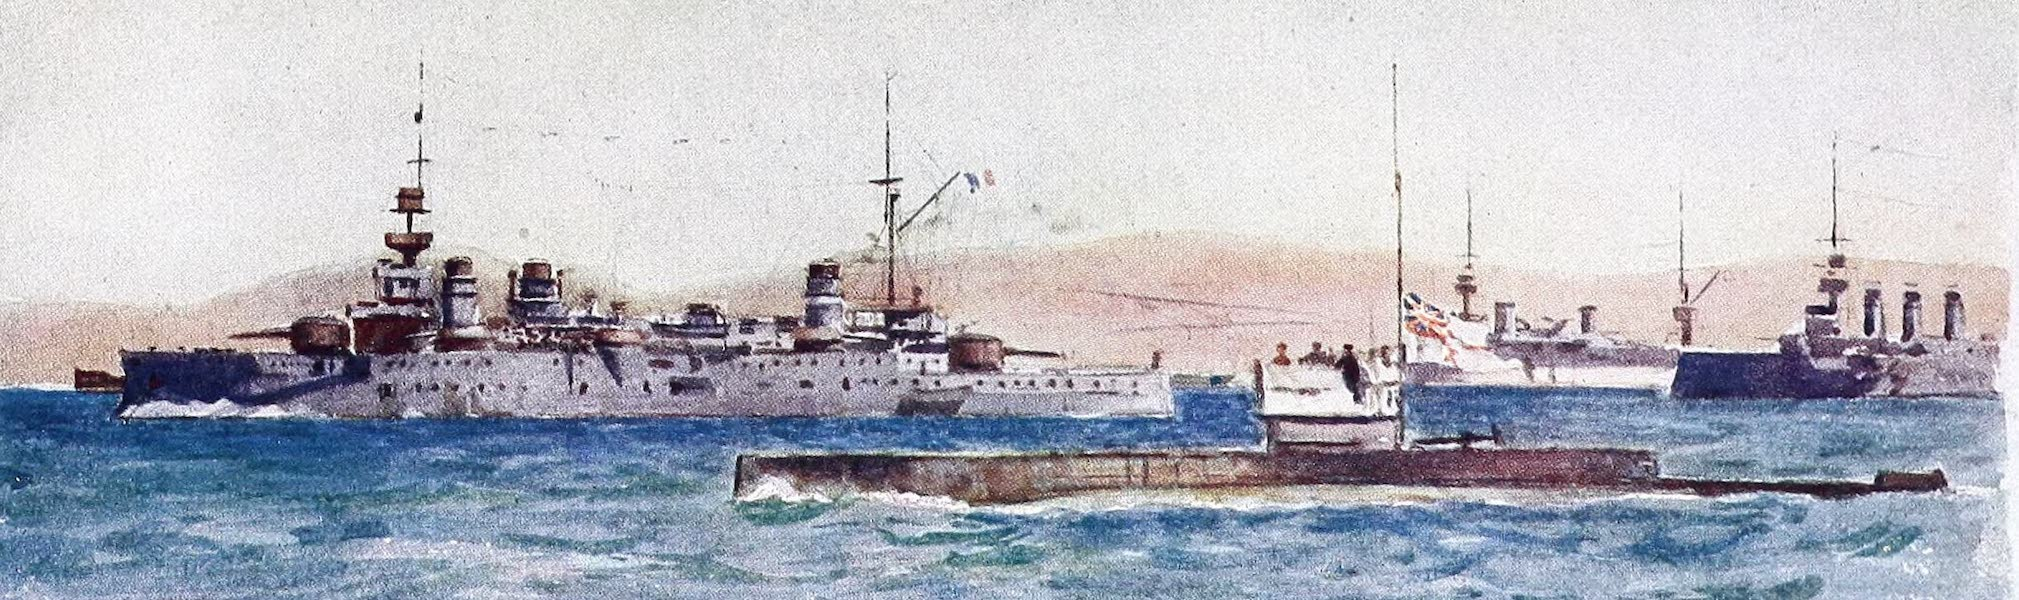 The Dardanelles : Colour Sketches from Gallipoli - Submarine E2 Returning from the Sea of Marmora (1915)